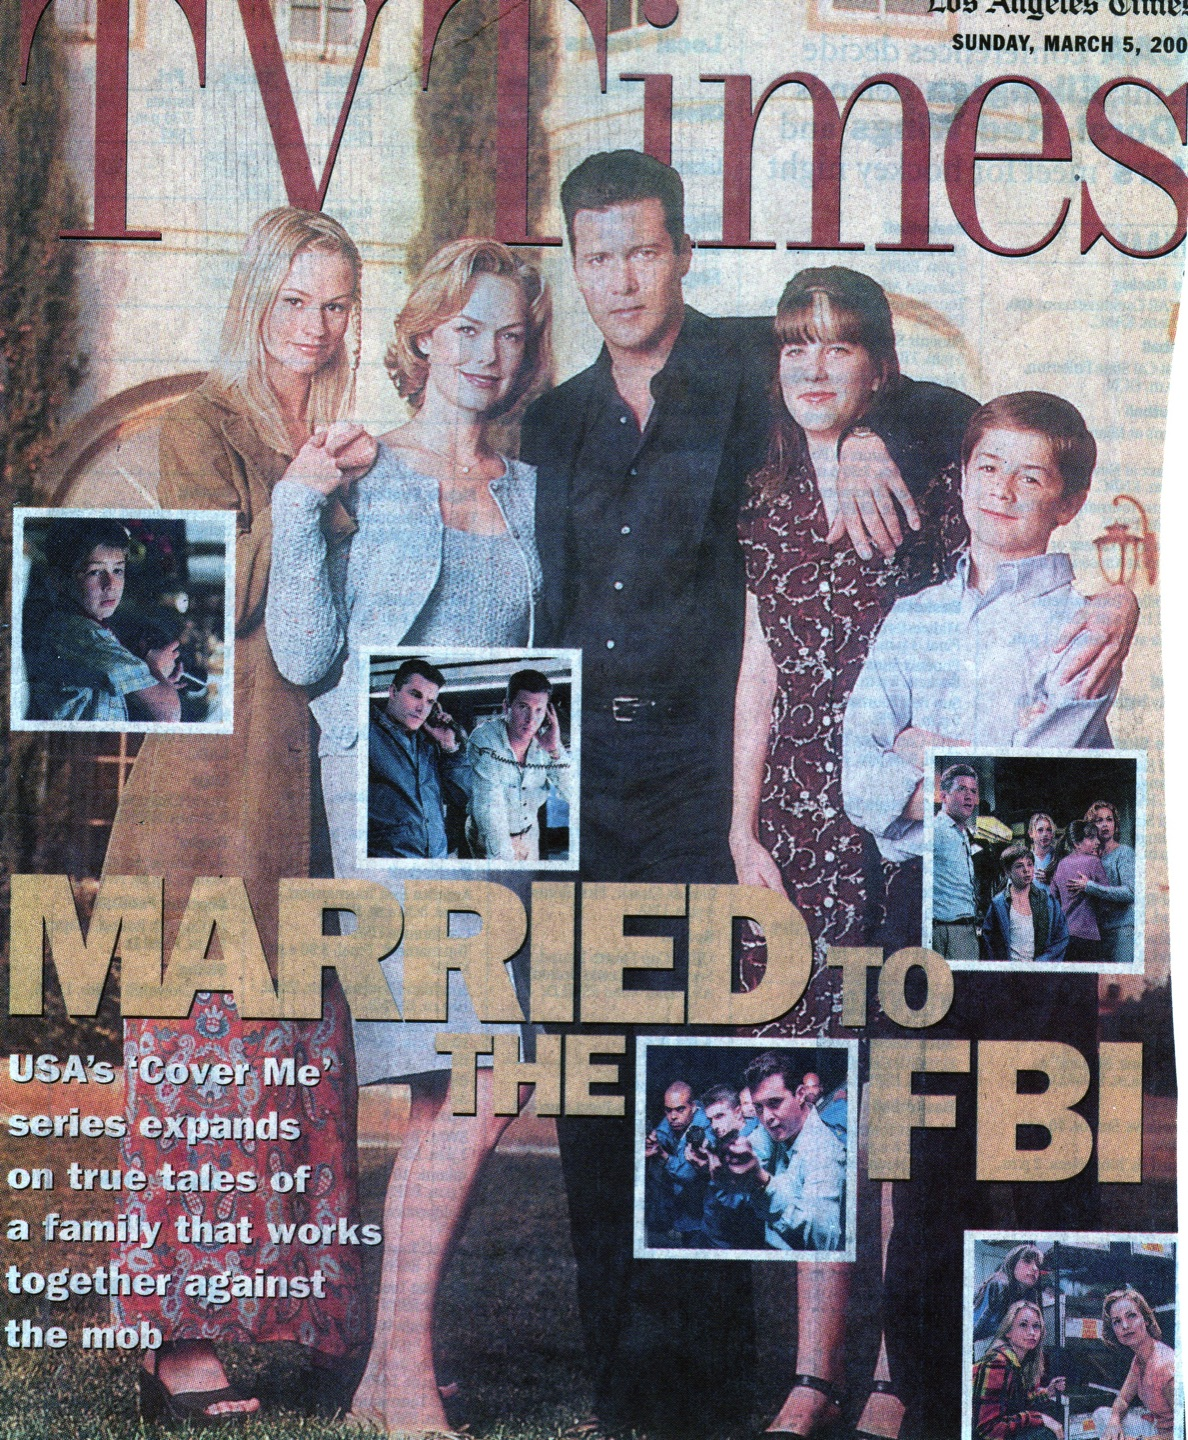 TV series debut was the highest-rated series premiere for USA Network. Cover Me: Based on the True Life of an FBI Family. Inspired by Laura's Family Life Story. She served and was credited as Executive Consultant. The series can be viewed via IMDb and/or Hulu Plus.